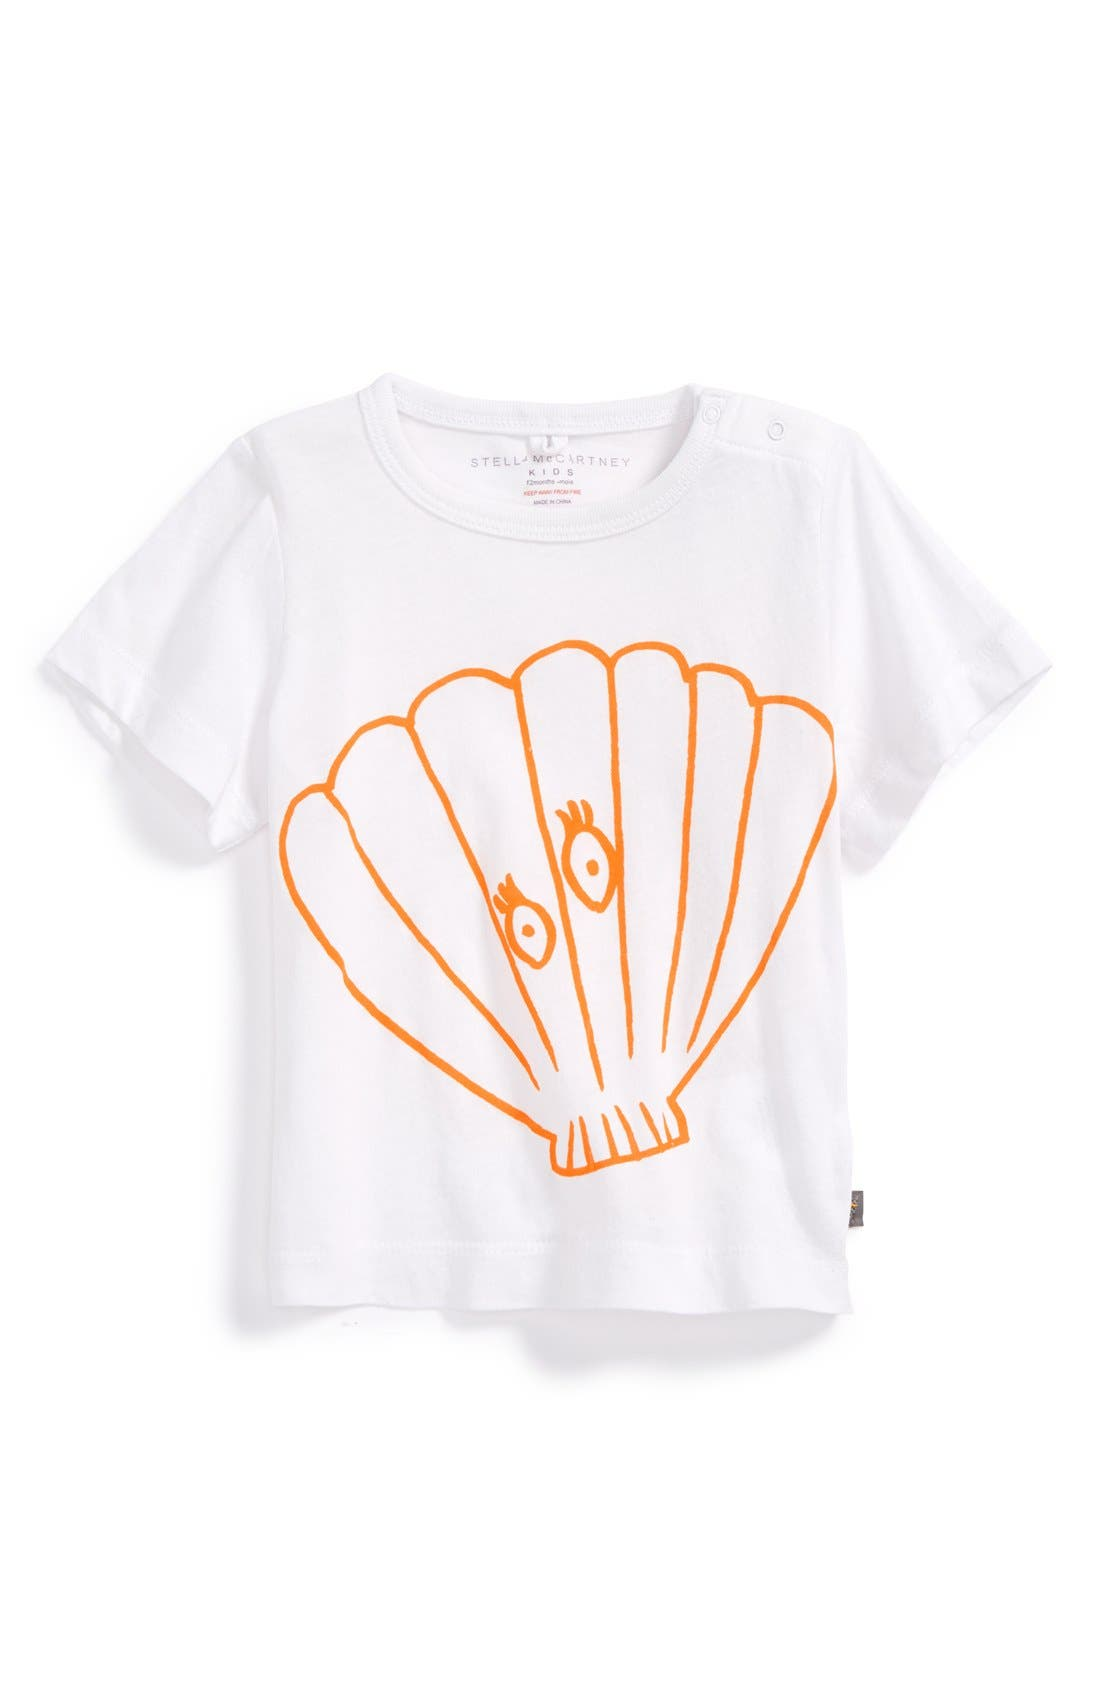 STELLA MCCARTNEY KIDS,                             Seashell Graphic Organic Cotton Tee,                             Main thumbnail 1, color,                             100